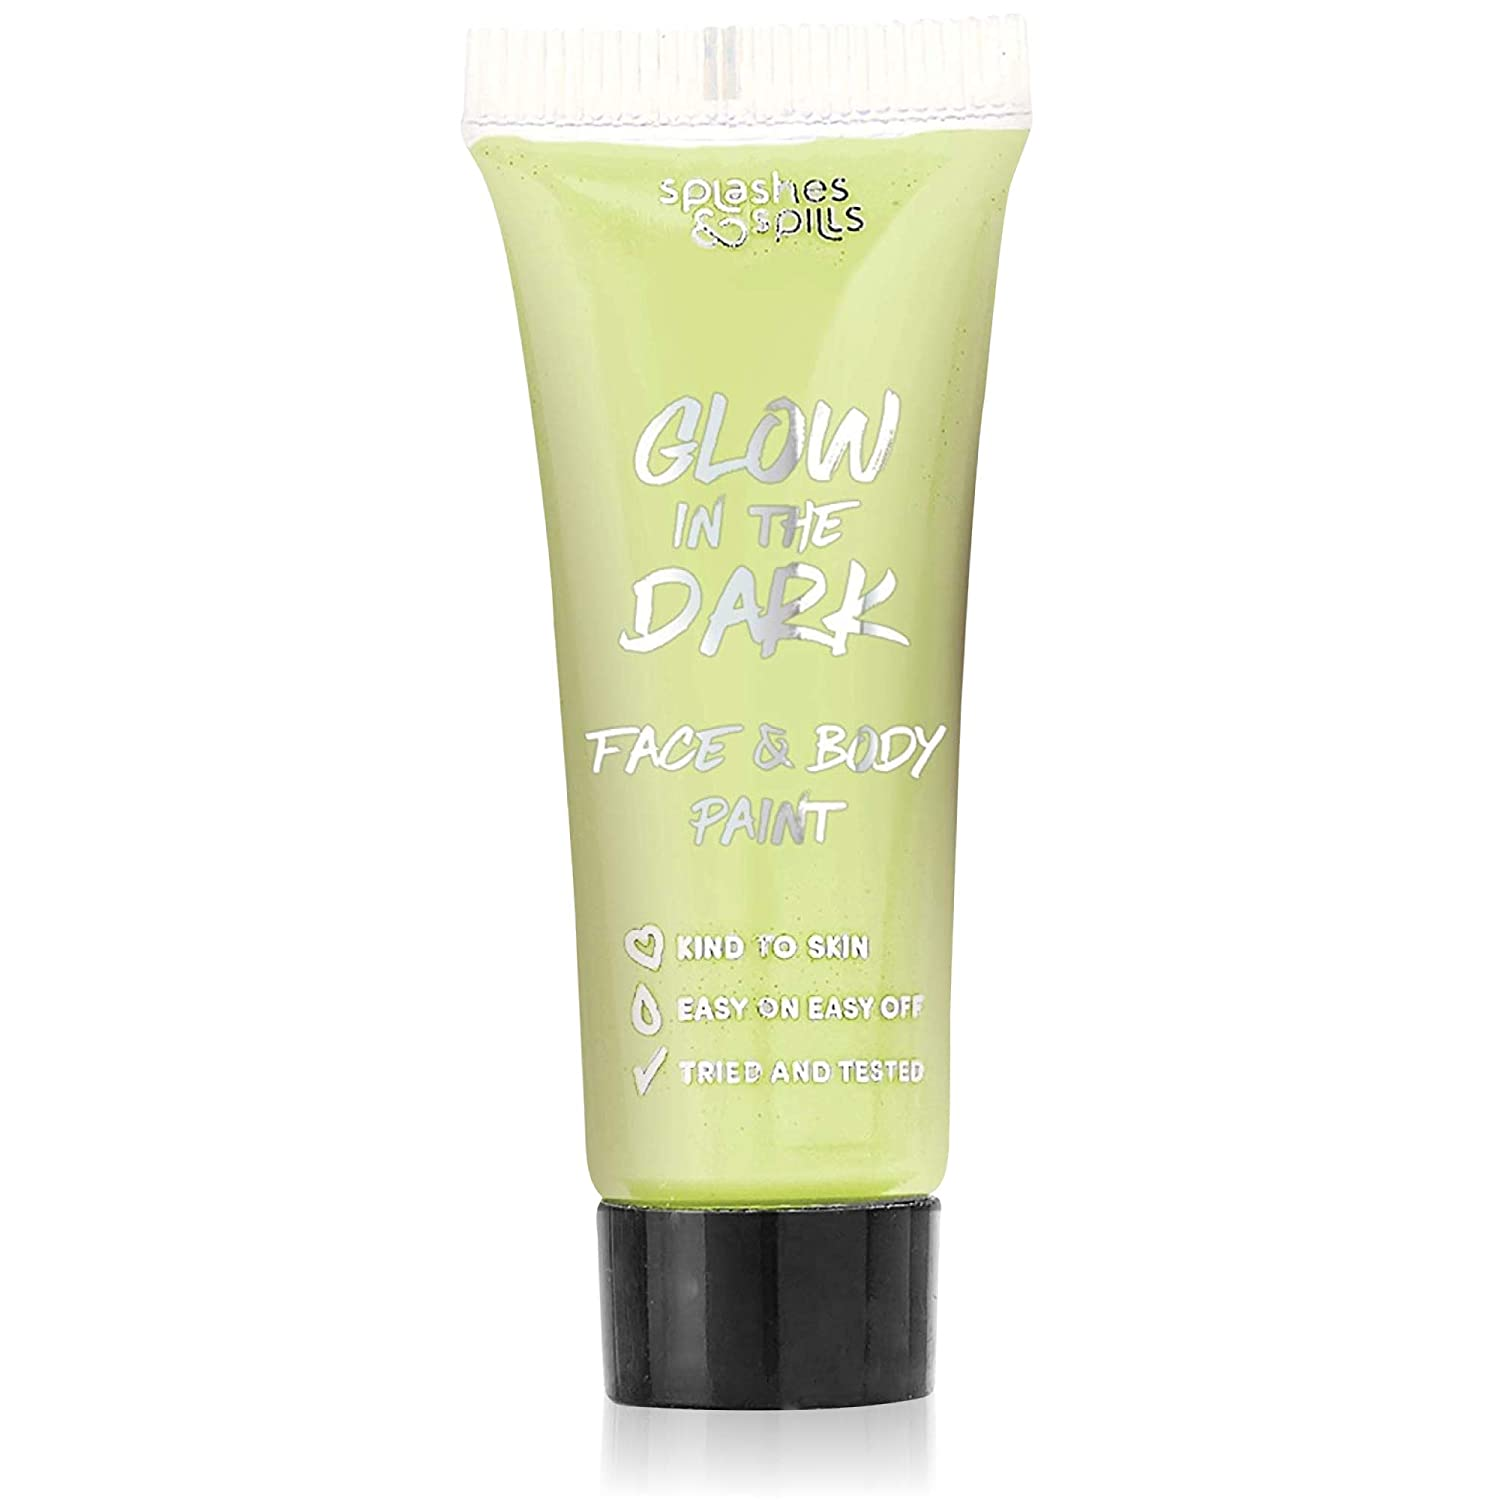 Glow in the Dark Face and Body Paint - Party, Costume and Halloween Makeup - Safe for All Skin Types - Easy On and Off - 0.34oz - by Splashes & Spills